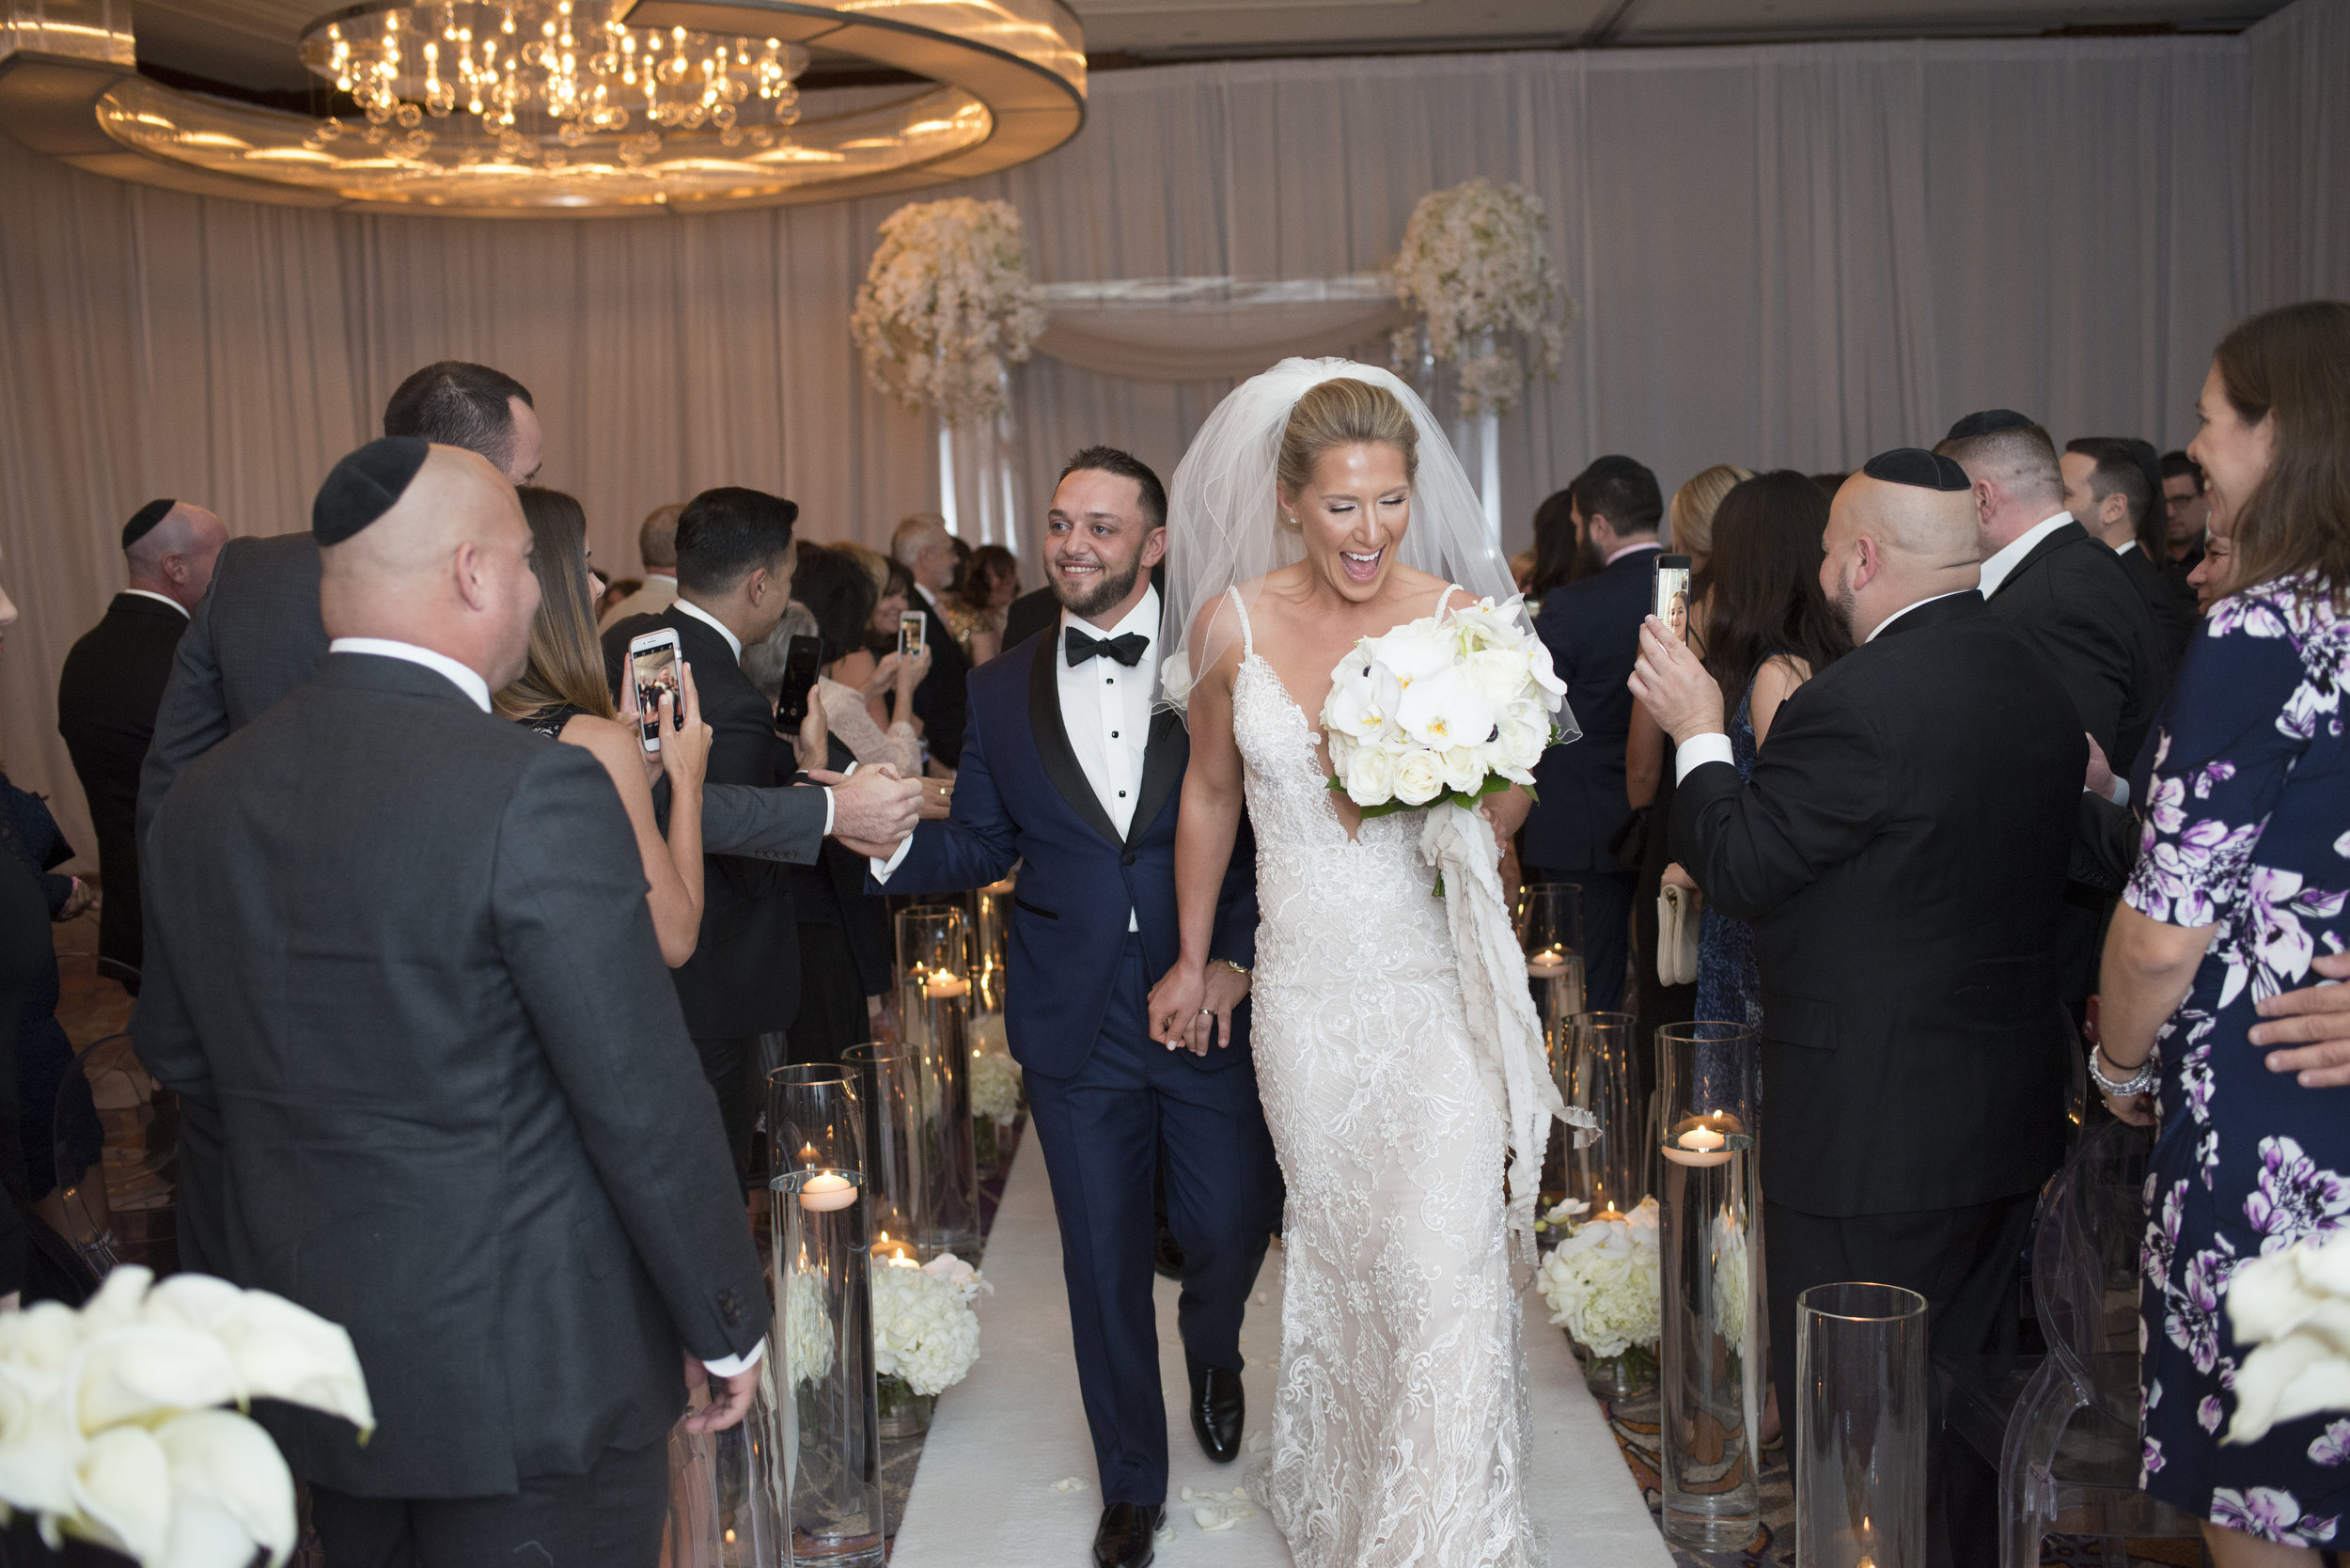 Newlyweds walk down the aisle after being married in a Jewish destination wedding.WEDDING PLANNING & EVENT DESIGN • Andrea Eppolito Events ,PHOTOGRAPHY • AltF Photography ,FLORAL AND DECOR DESIGN & PRODUCTION • Destinations by Design , CATERING • Mandarin Oriental Las Vegas , COCKTAILS •  The Grand Bevy , WEDDING GOWN •  Galia Lahav ,SHOES •  Jimmy Choo